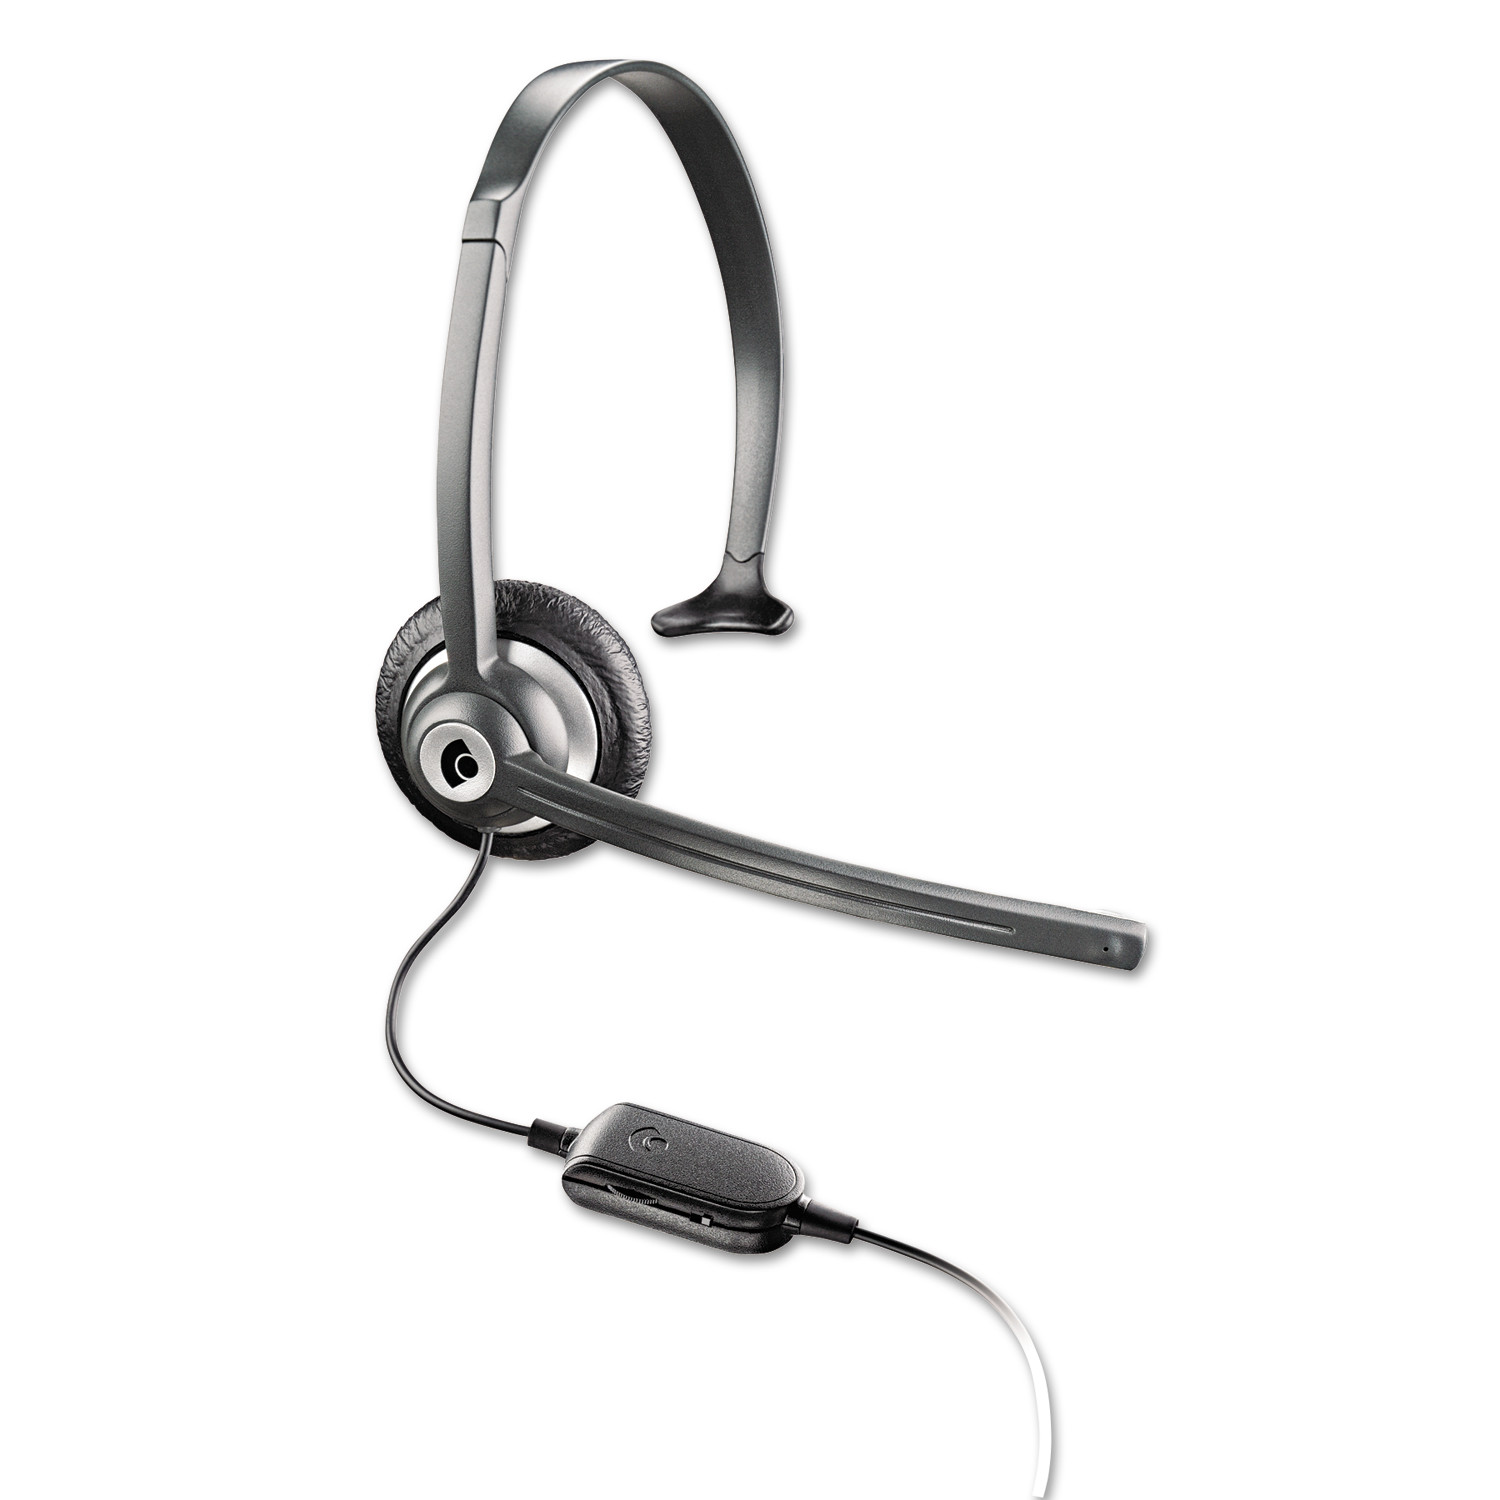 Plantronics M214C Over-the-Head Mobile/Cordless Phone Headset w/Noise Canceling Mic